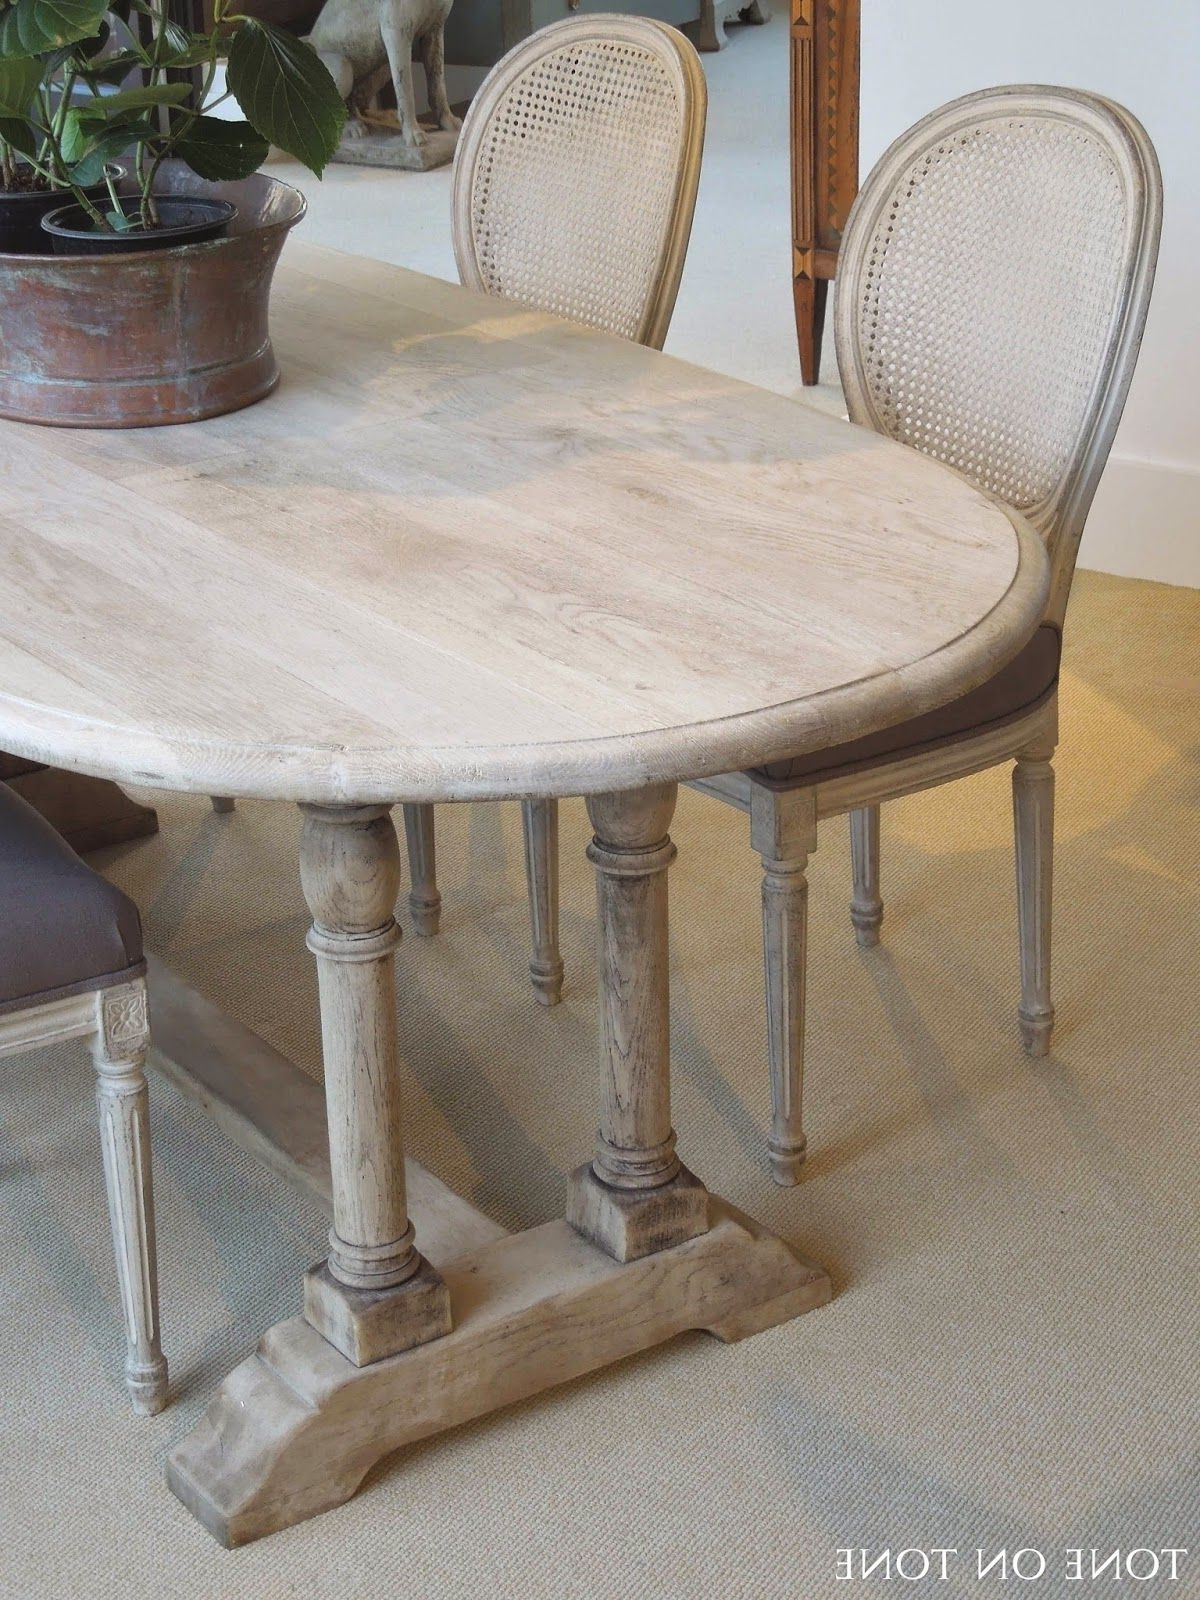 Helms Round Dining Tables throughout Well known Here Is A 19Th Century Belgian Bleached Oak Dining / Kitchen Table